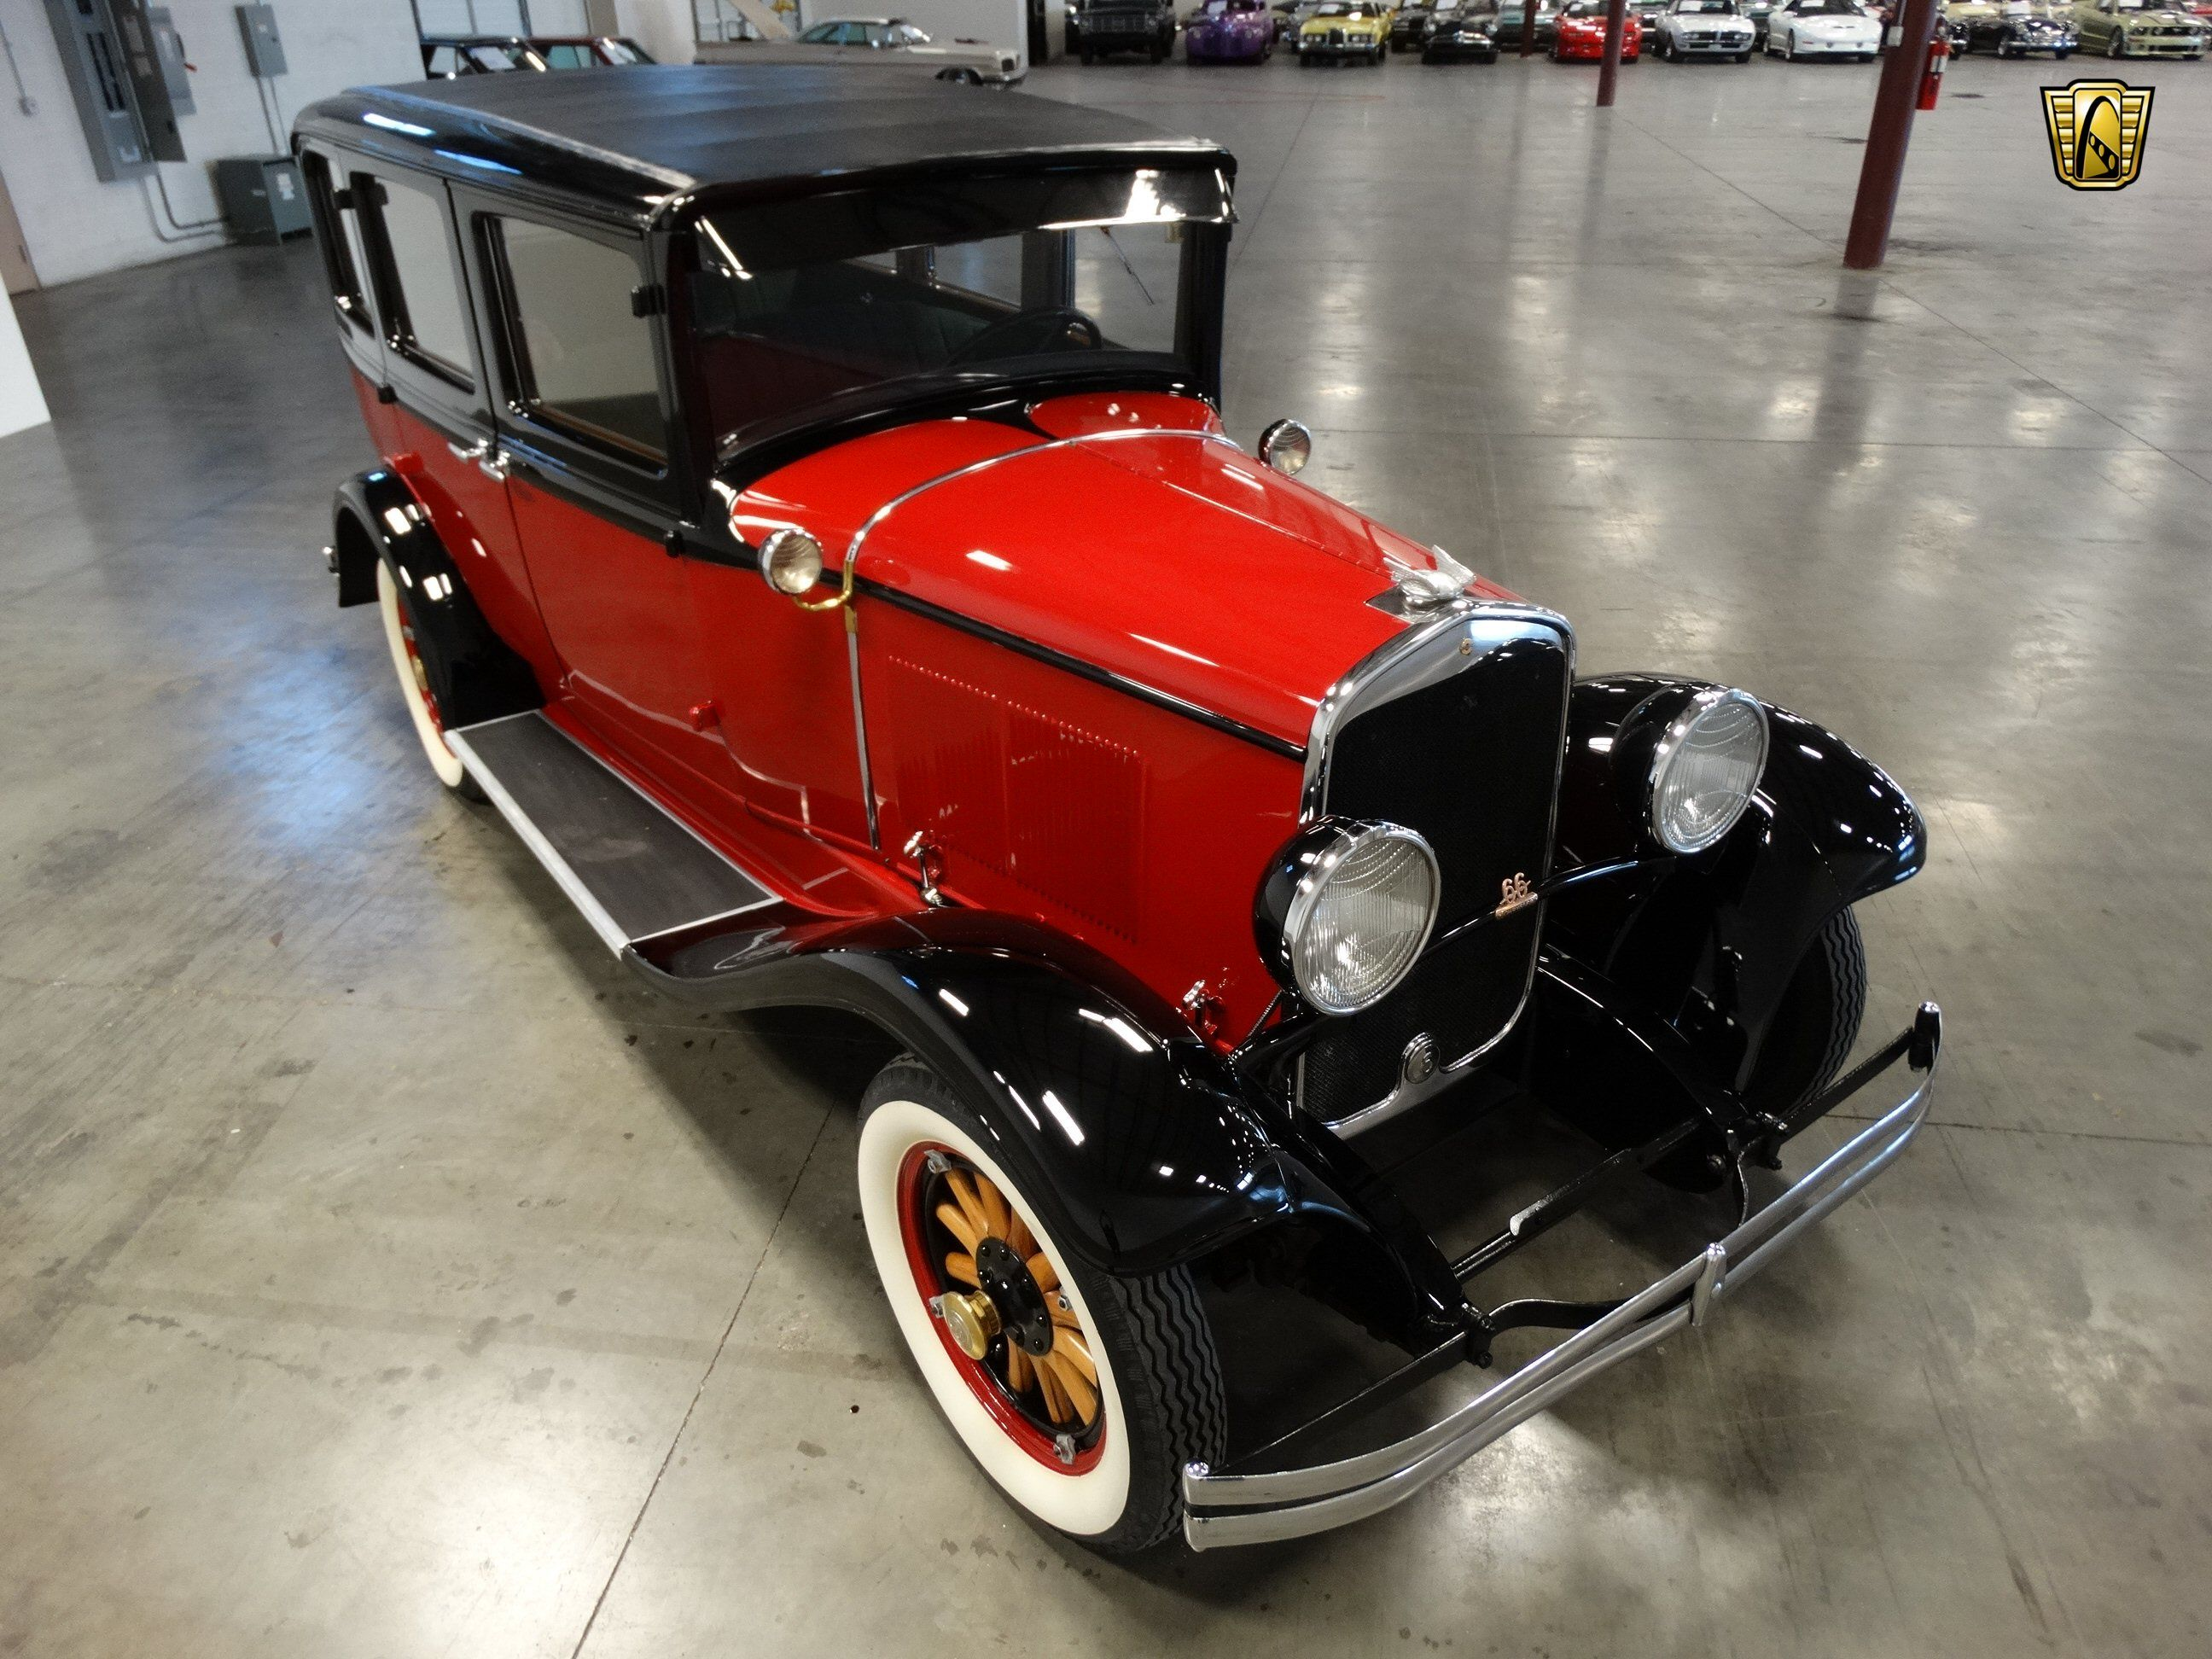 show cylinder chrysler performance hot dealership in head network indy rod indianapolis meet you articles